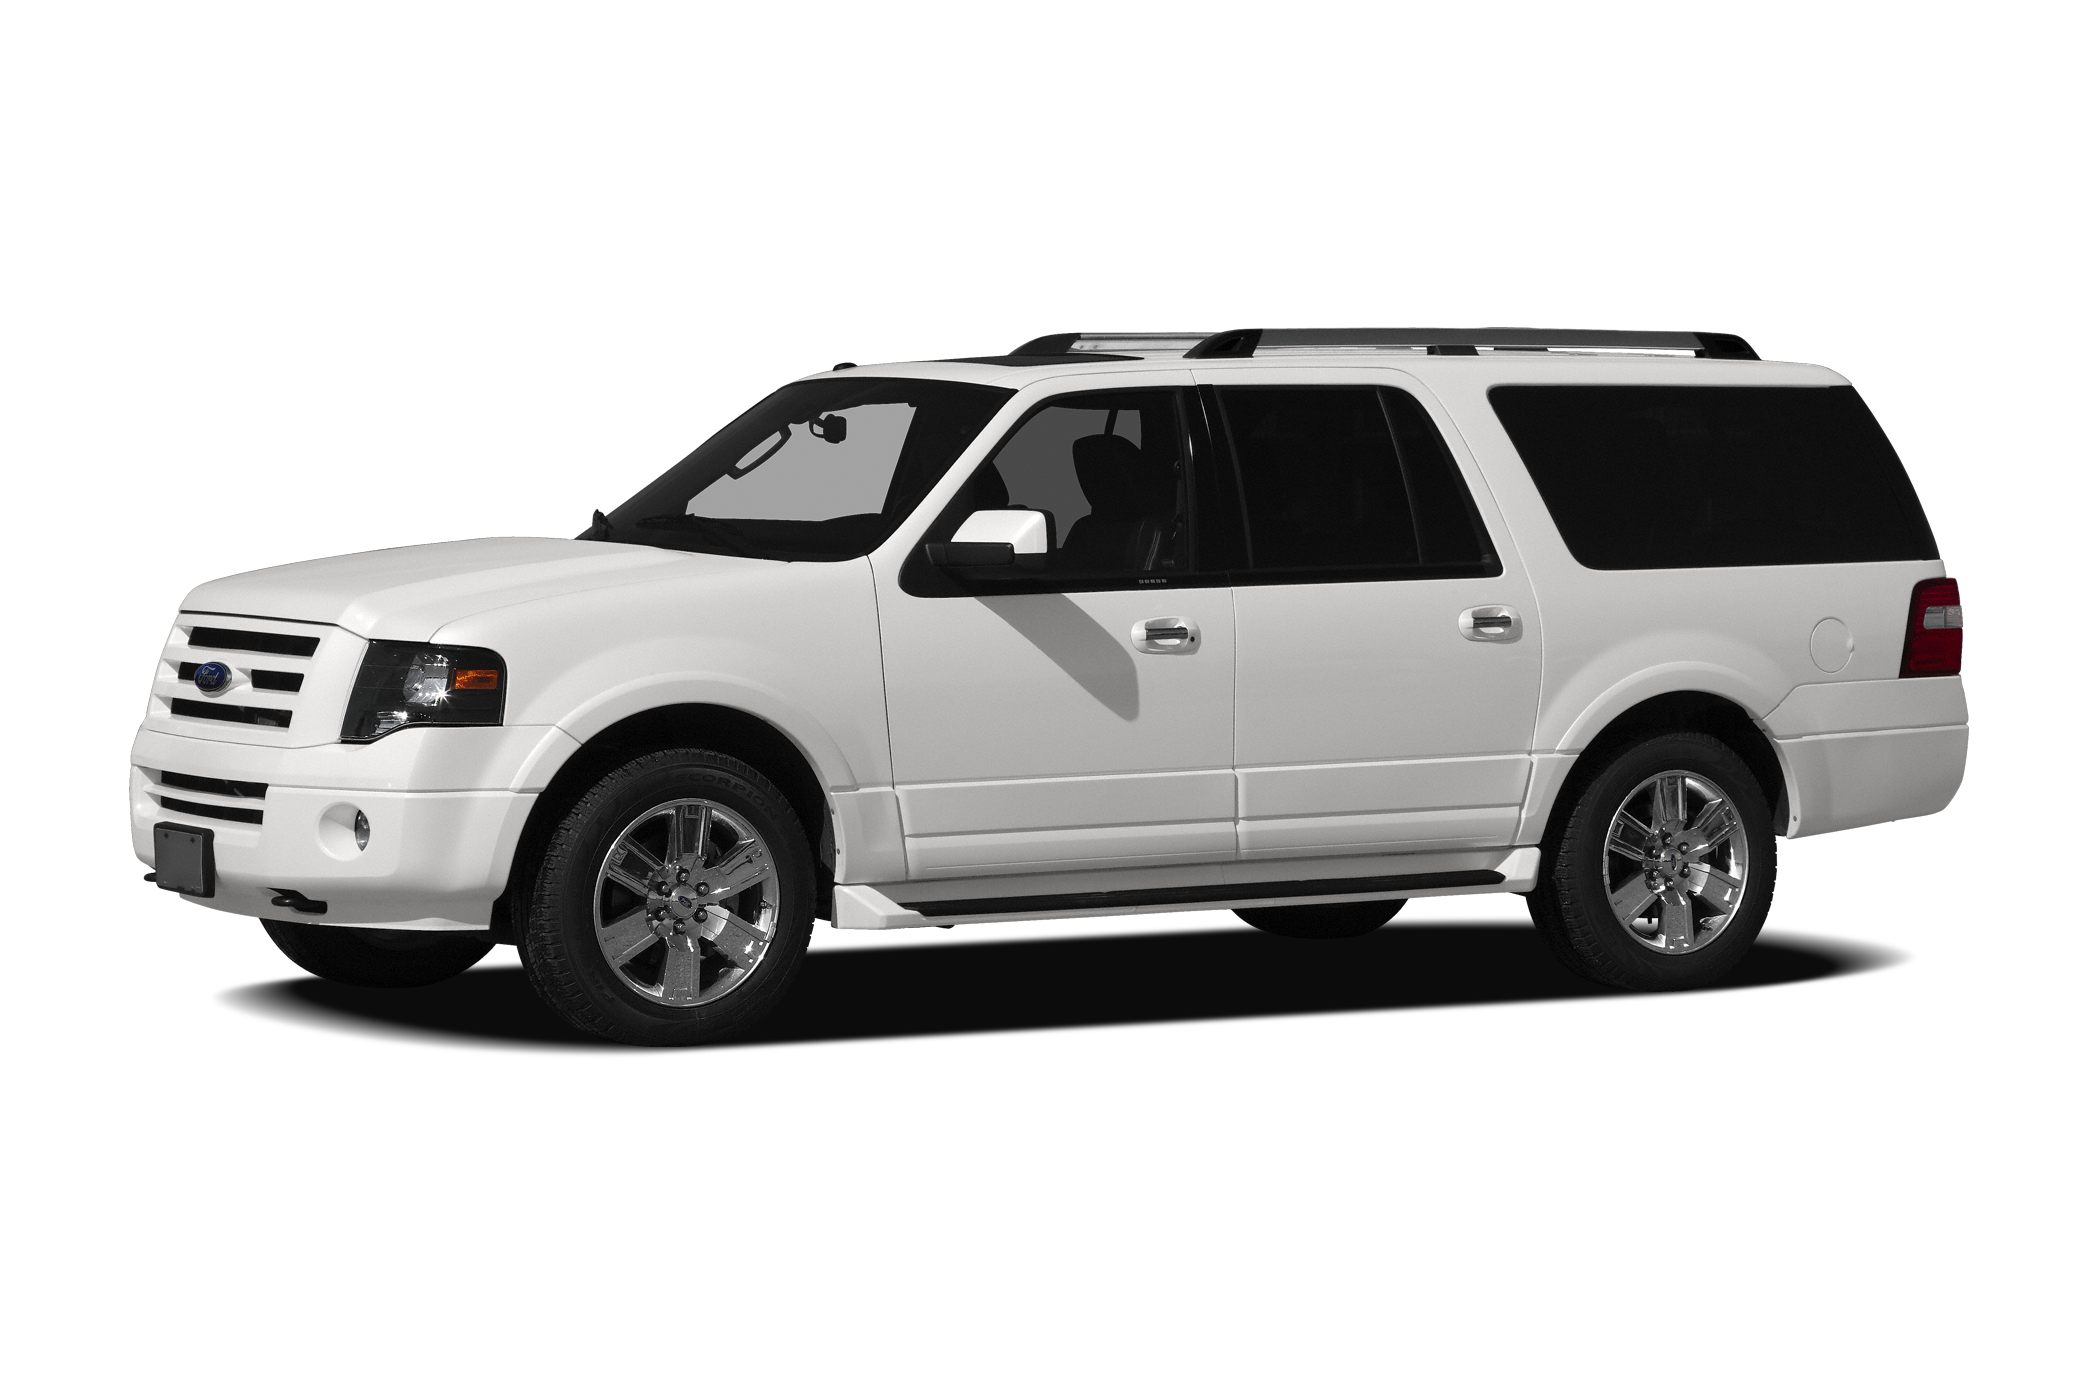 2012 Ford Expedition EL XLT SUV for sale in Kansas City for $22,995 with 110,875 miles